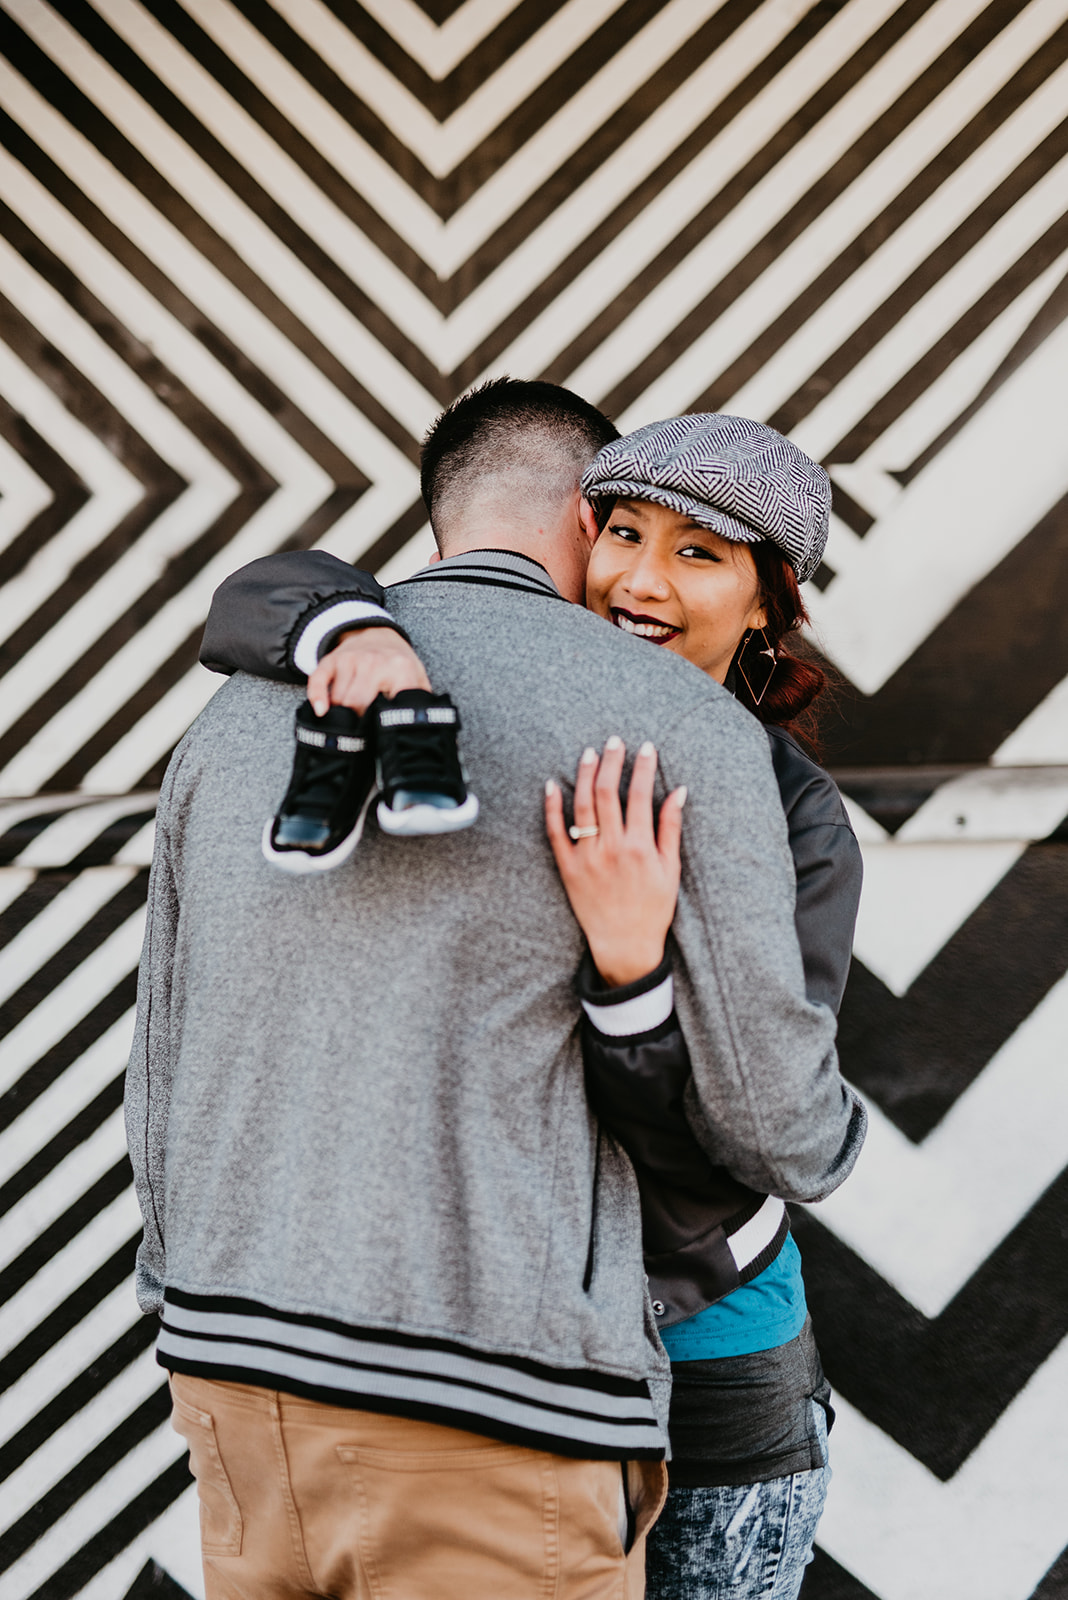 Joey+ Melissa Baby Announcement - Downtown Las Vegas, NV